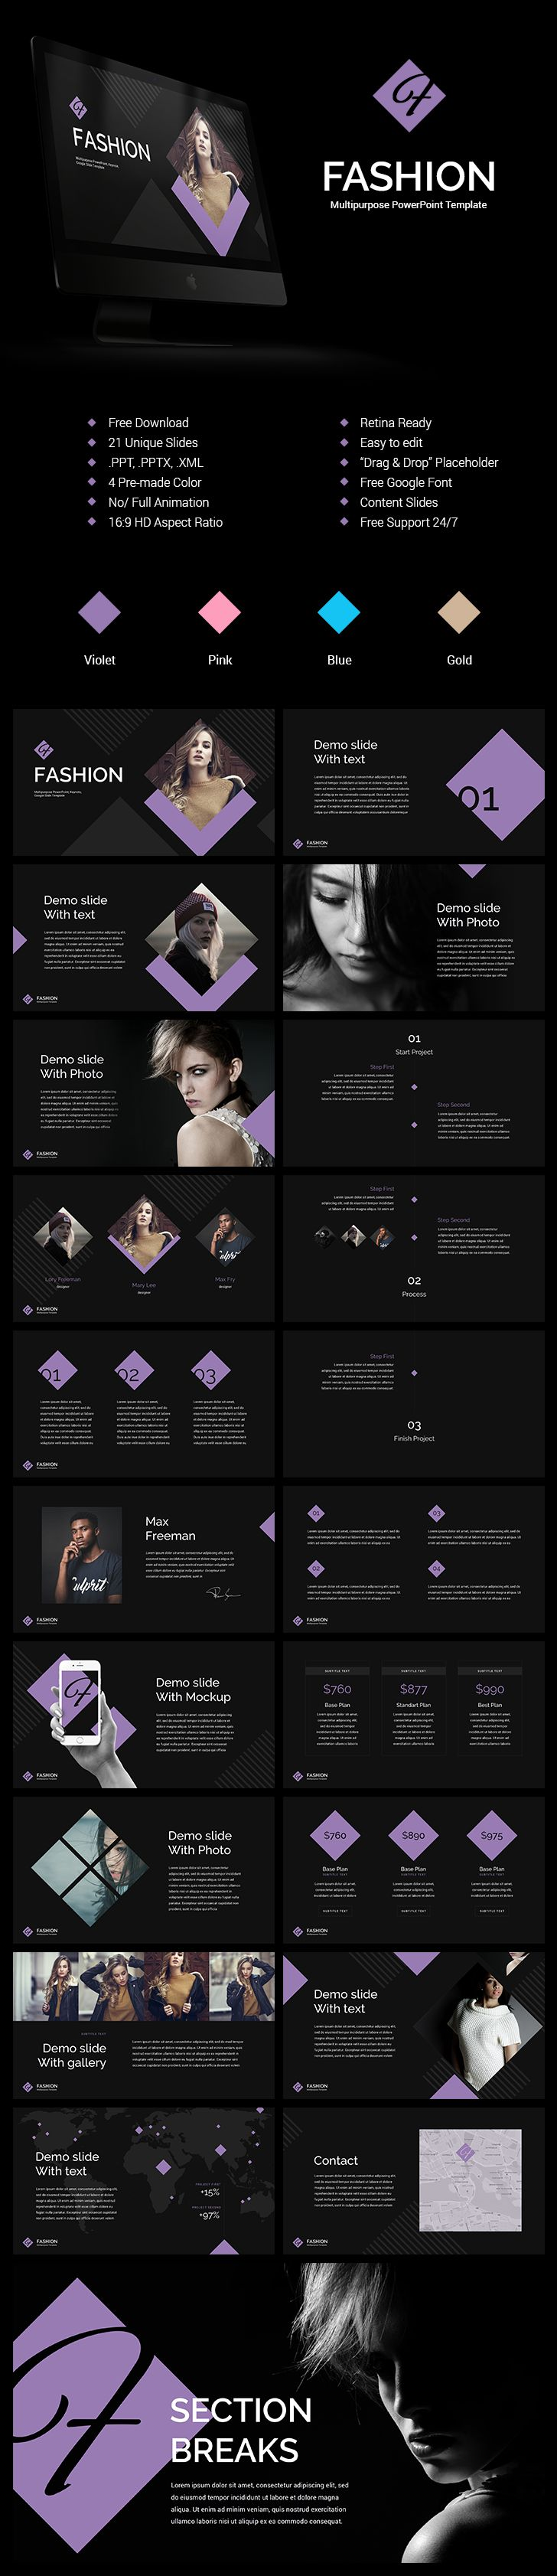 57 best powerpoint template images on pinterest ui ux animation fashion powerpoint templates free download 21 unique slides 4 pre made color toneelgroepblik Choice Image